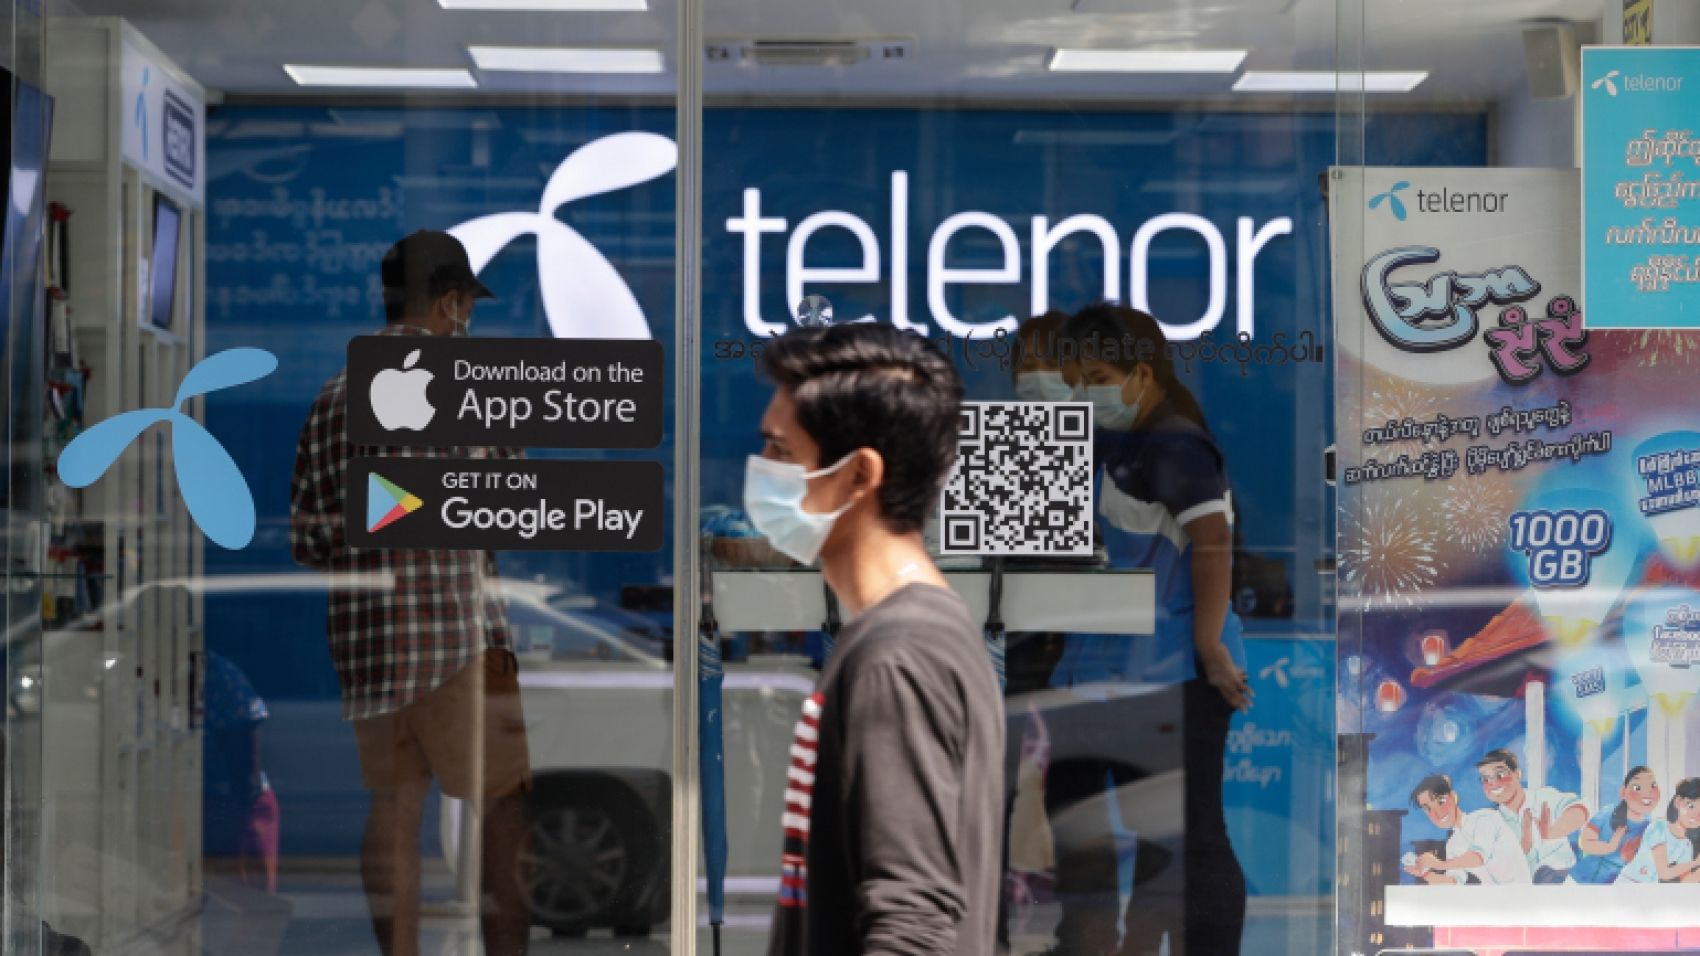 epa08986062 A man walks past a Telenor showroom in downtown Yangon, Myanmar, 04 February 2021. Telenor company announced that all mobile operators, international gateways and internet service providers in Myanmar received a directive on 03 February 2021 to block social media service Facebook. Myanmar?s military seized power and declared a state of emergency for one year after arresting State Counselor Aung San Suu Kyi and Myanmar President Win Myint, along with other political figures, in an early morning raid on 01 February.  EPA-EFE/LYNN BO BO